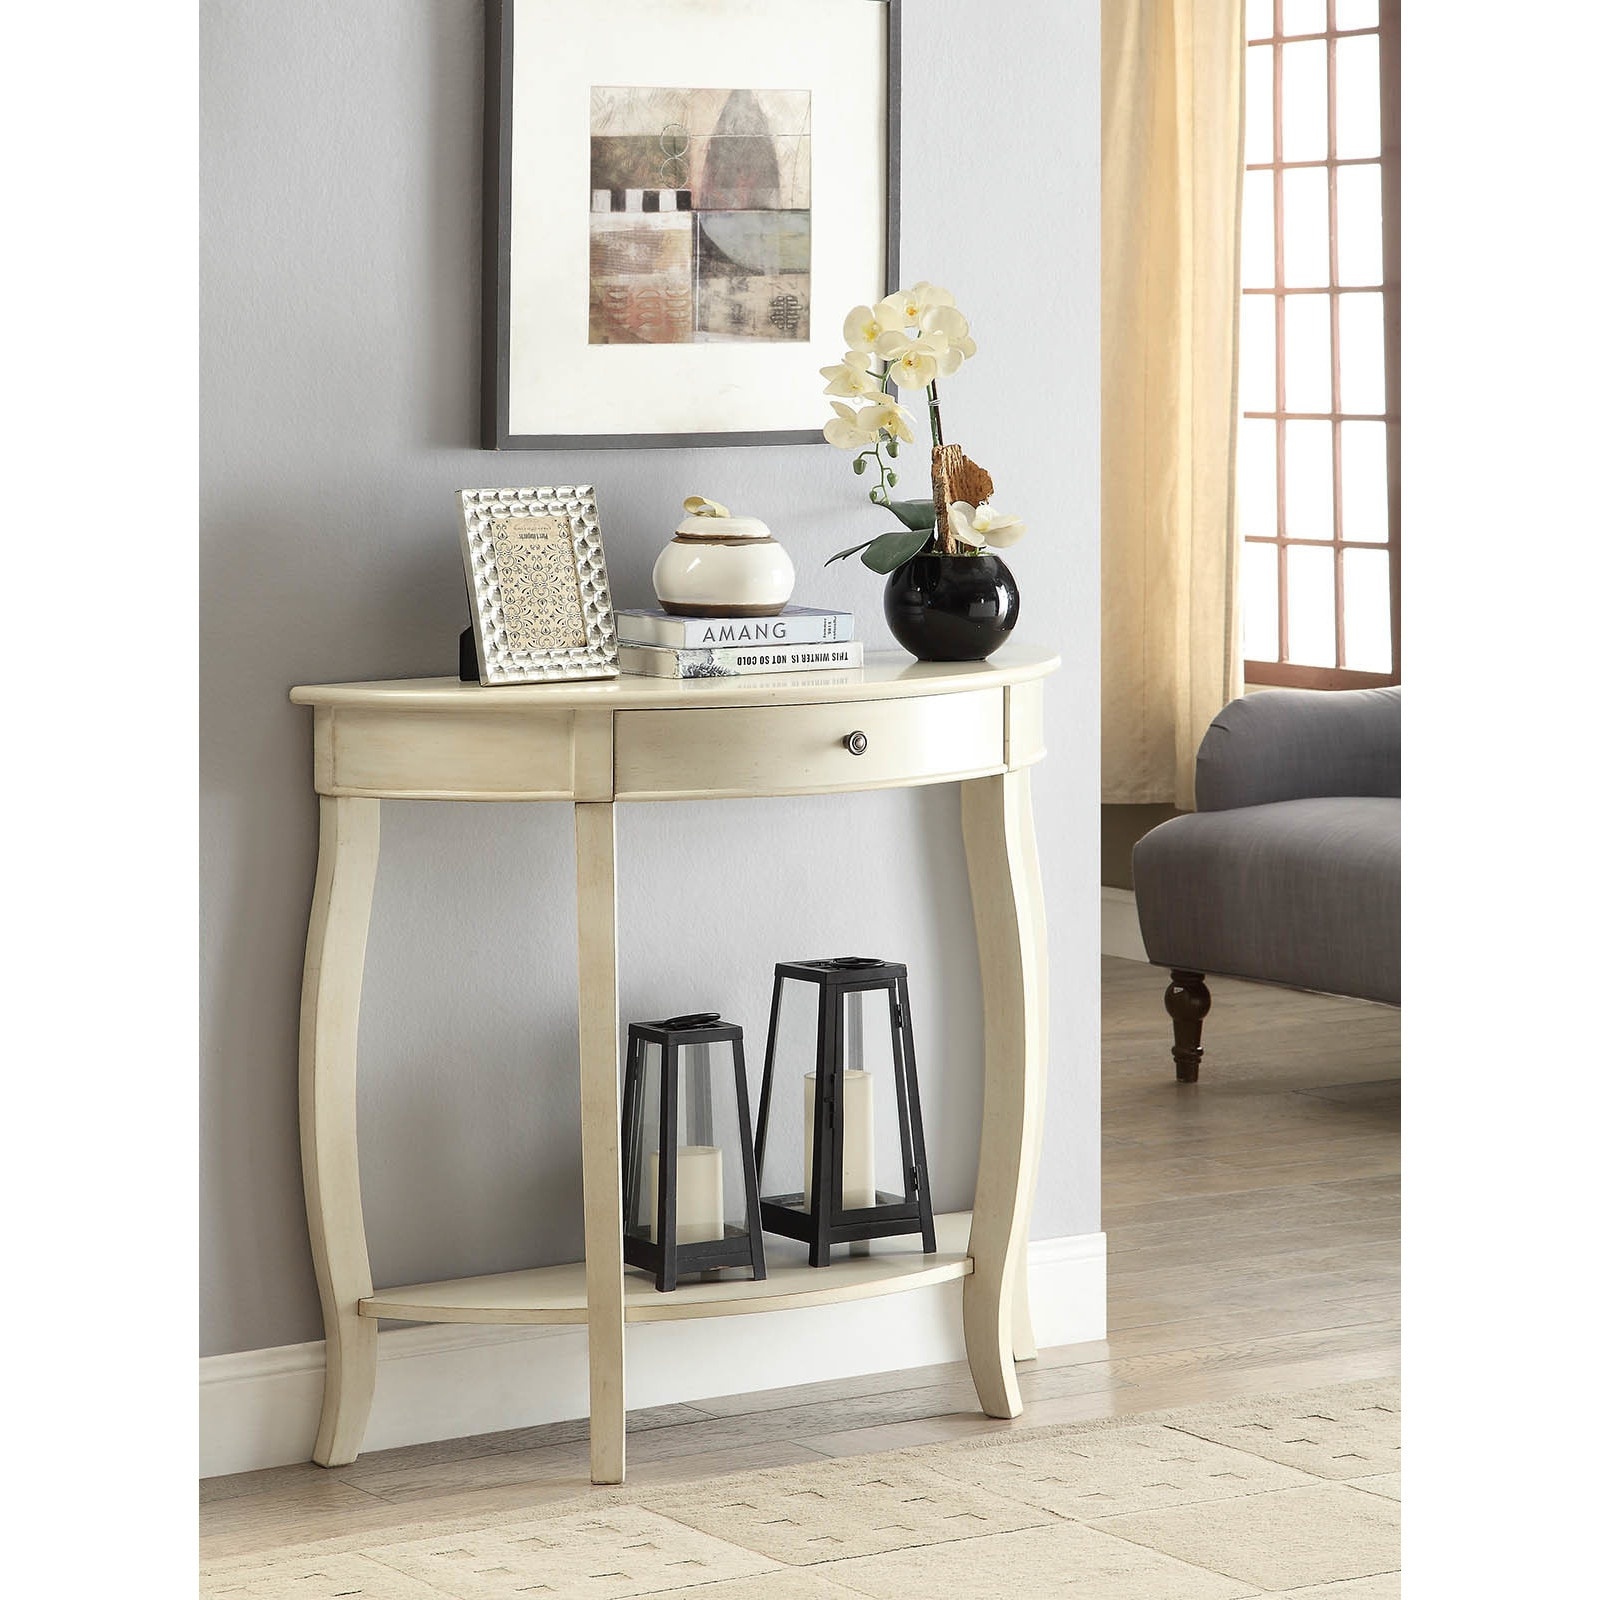 Yvonne Half Moon Console Table With Drawer In Antique Whi.